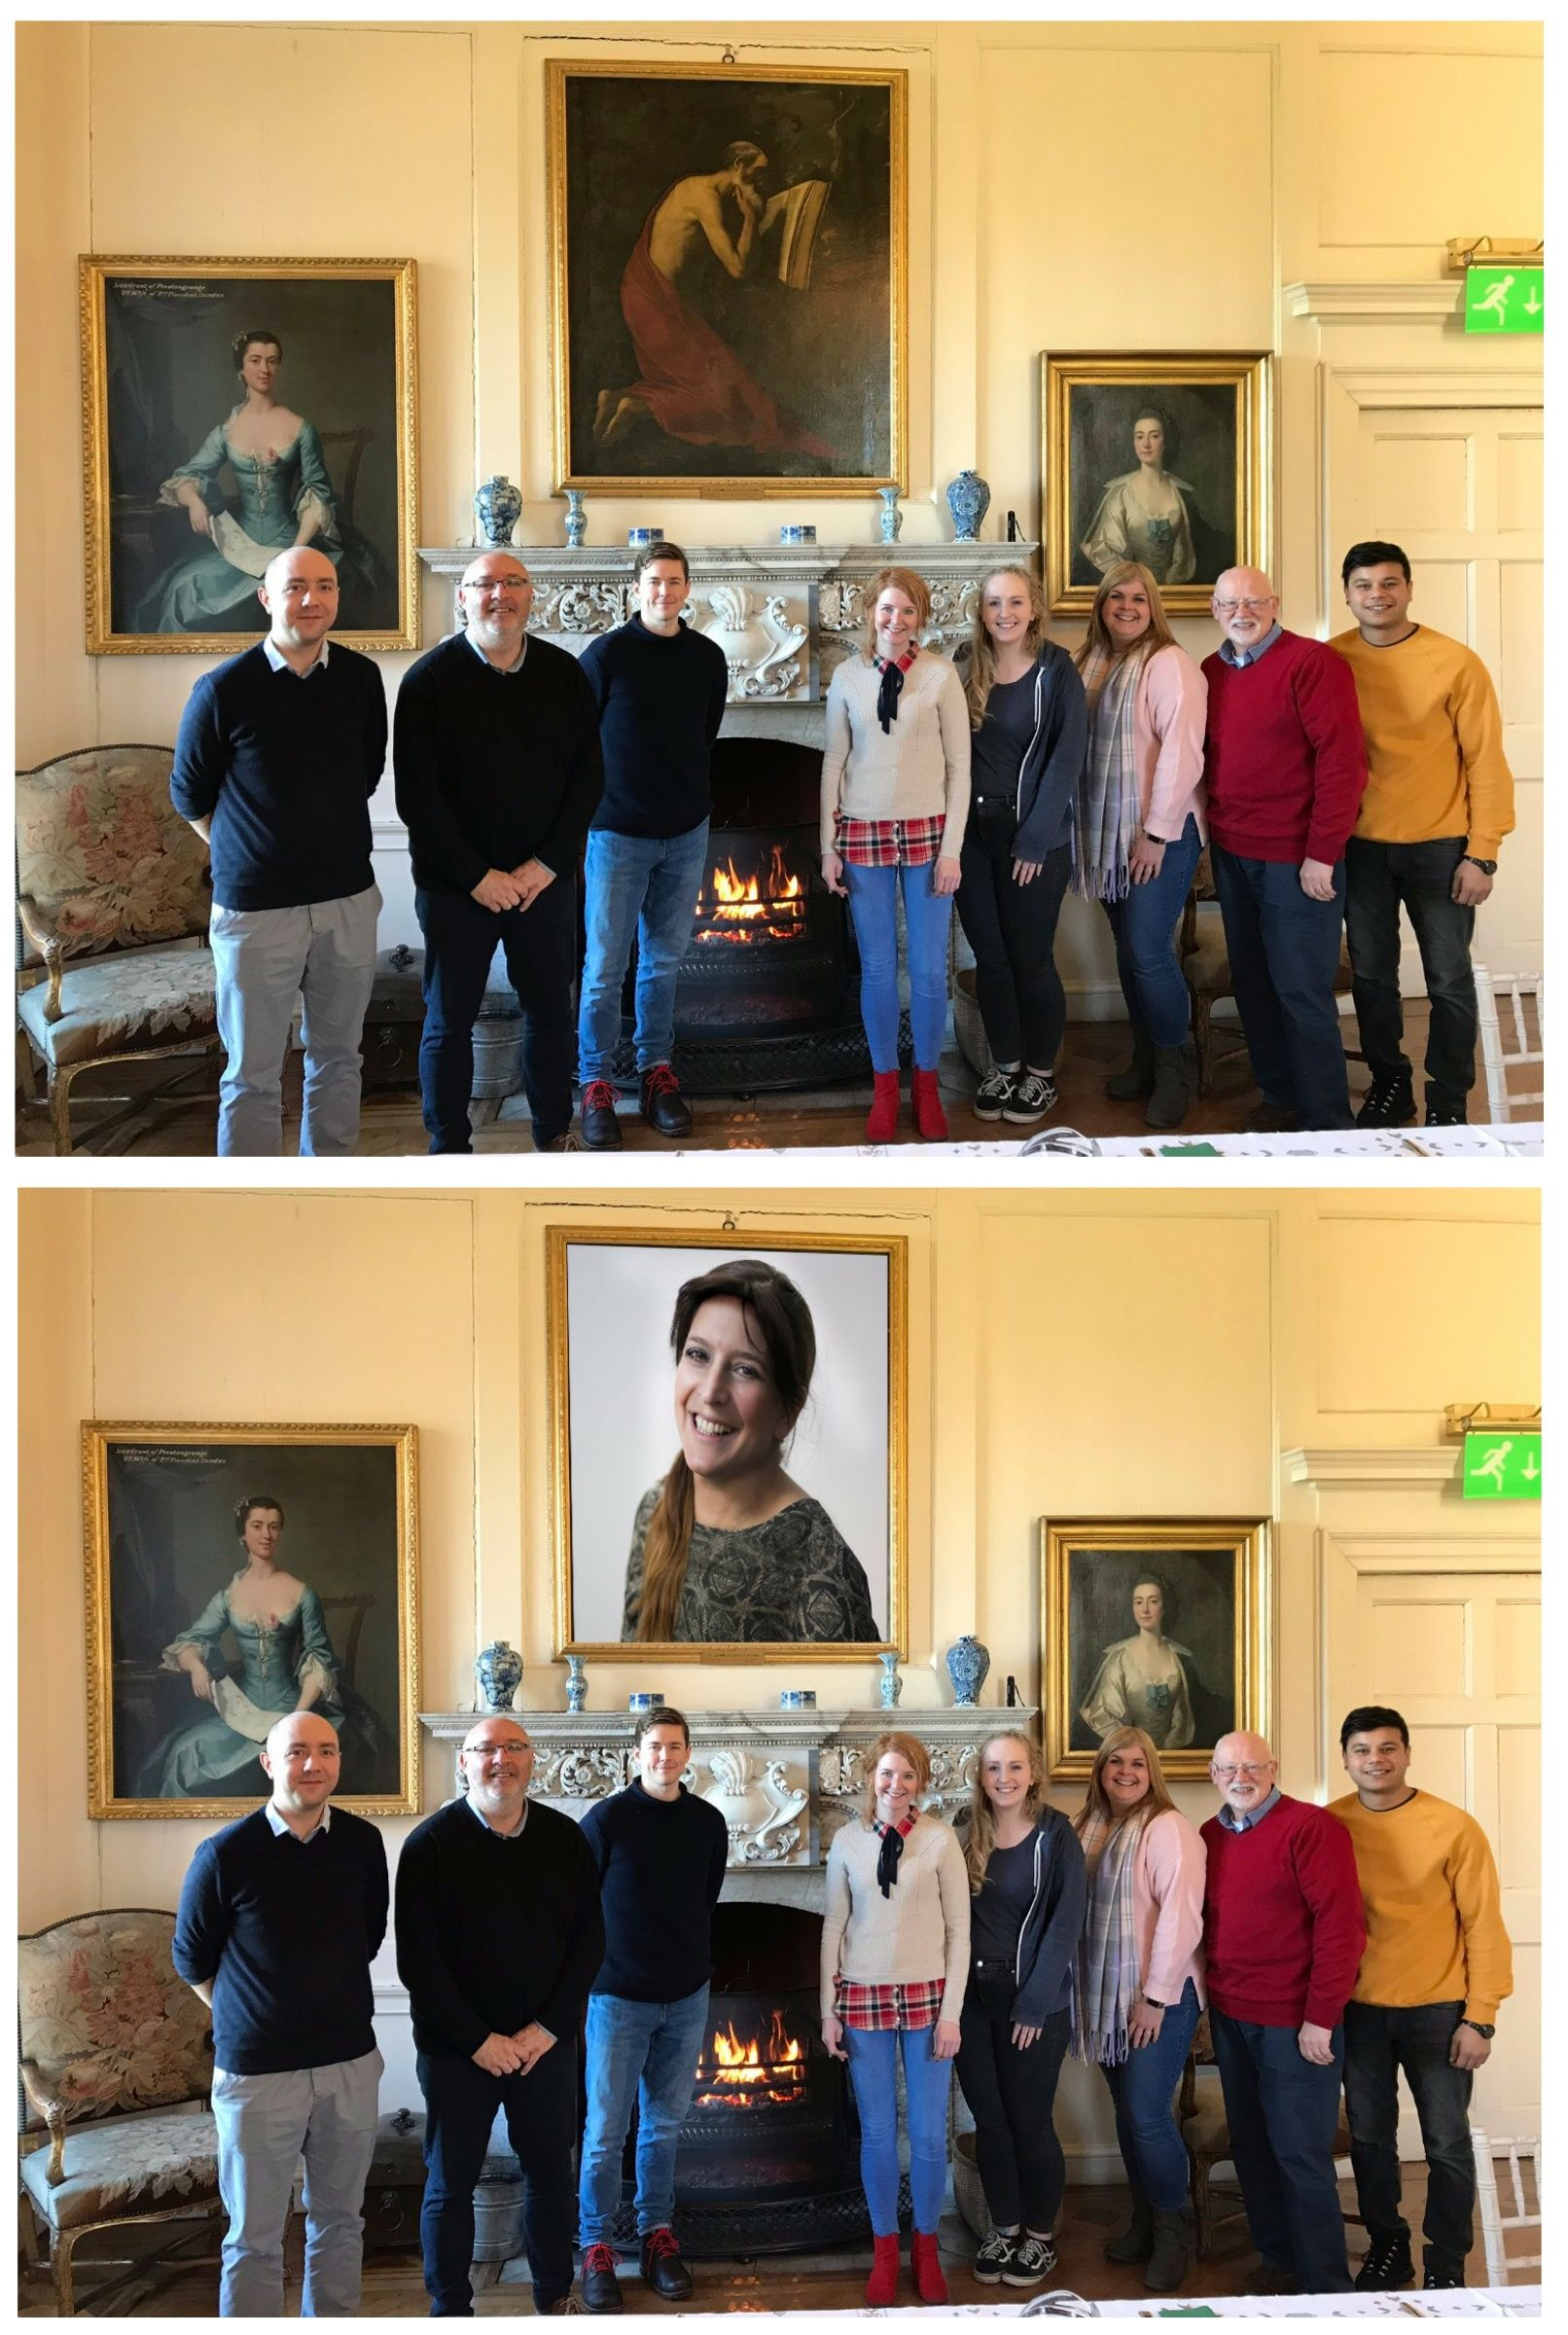 My mom missed a group photo, so she offered to Photoshop herself in: